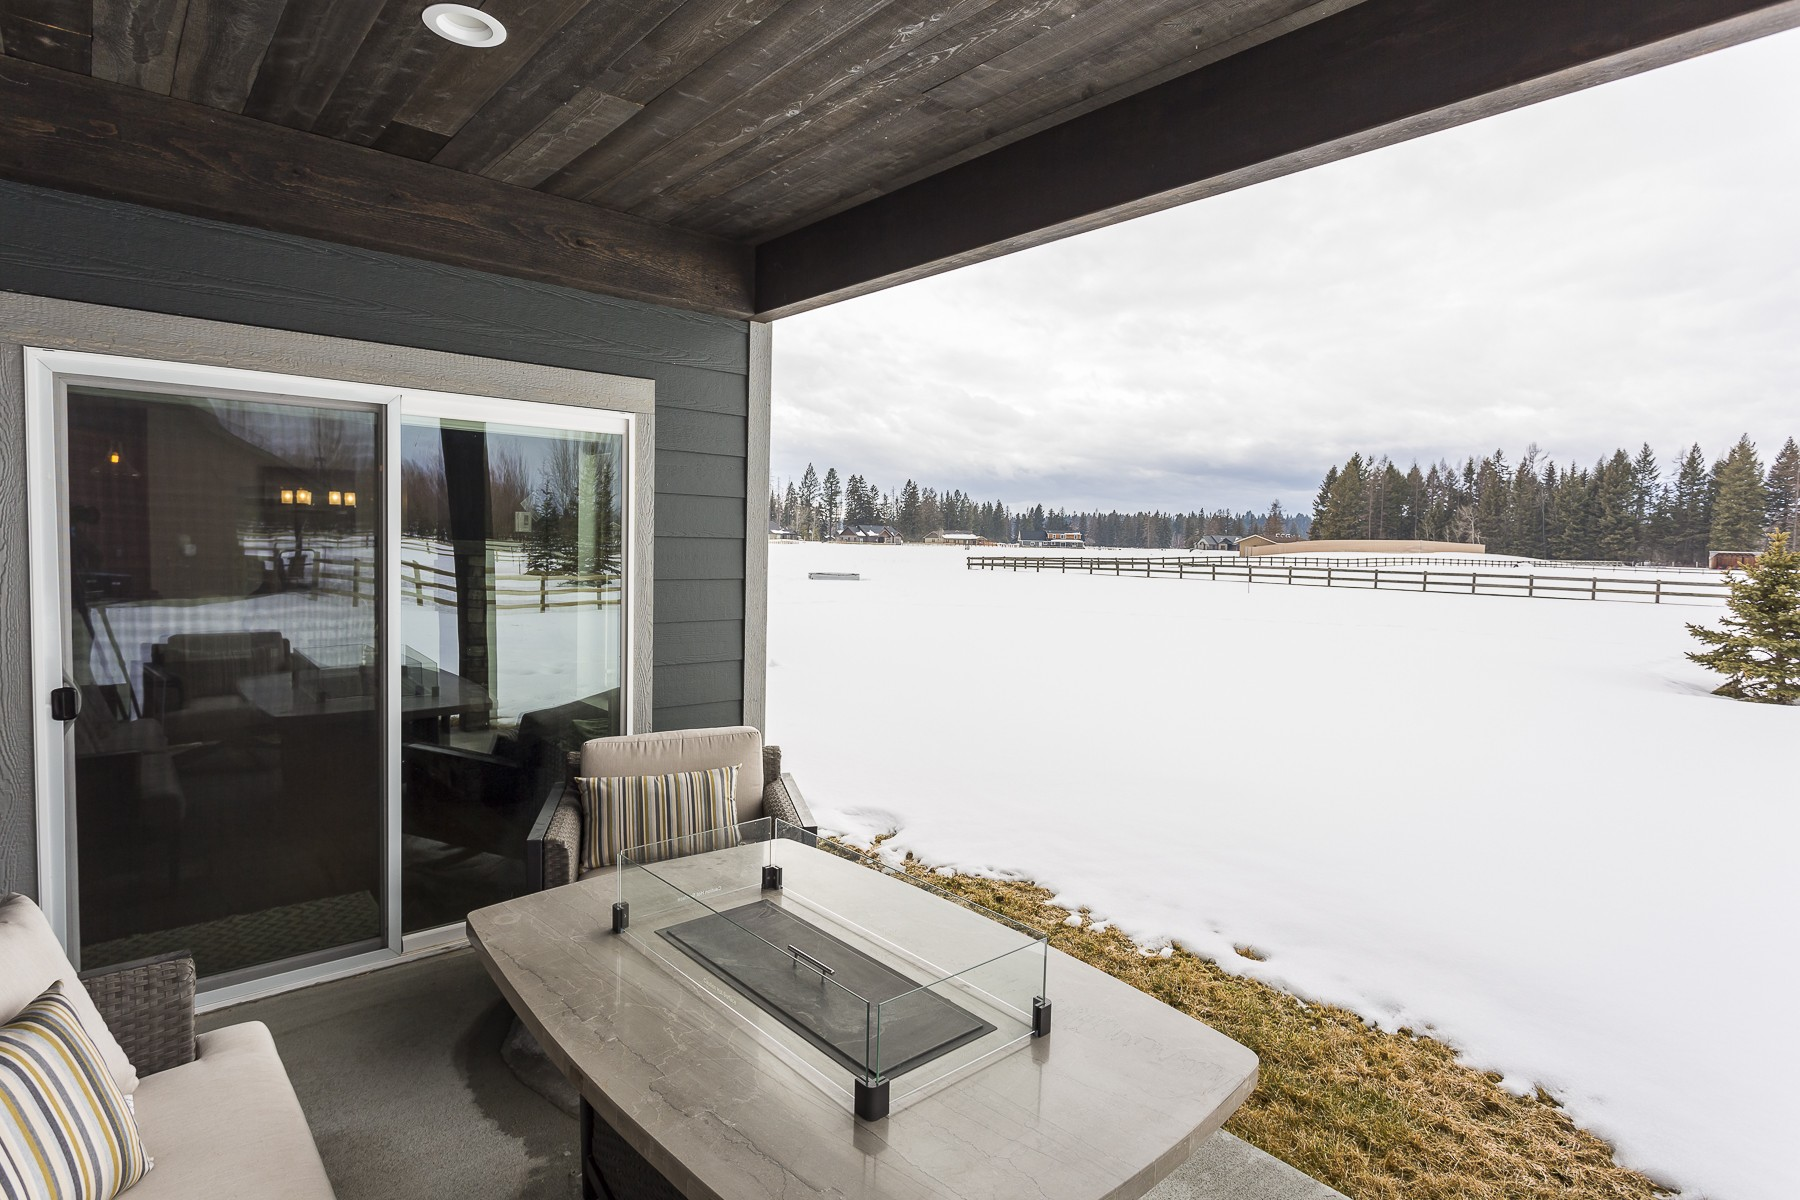 Additional photo for property listing at 303 Whispering Meadows , Kalispell, MT 59901 303  Whispering Meadows Trl Kalispell, Montana 59901 United States